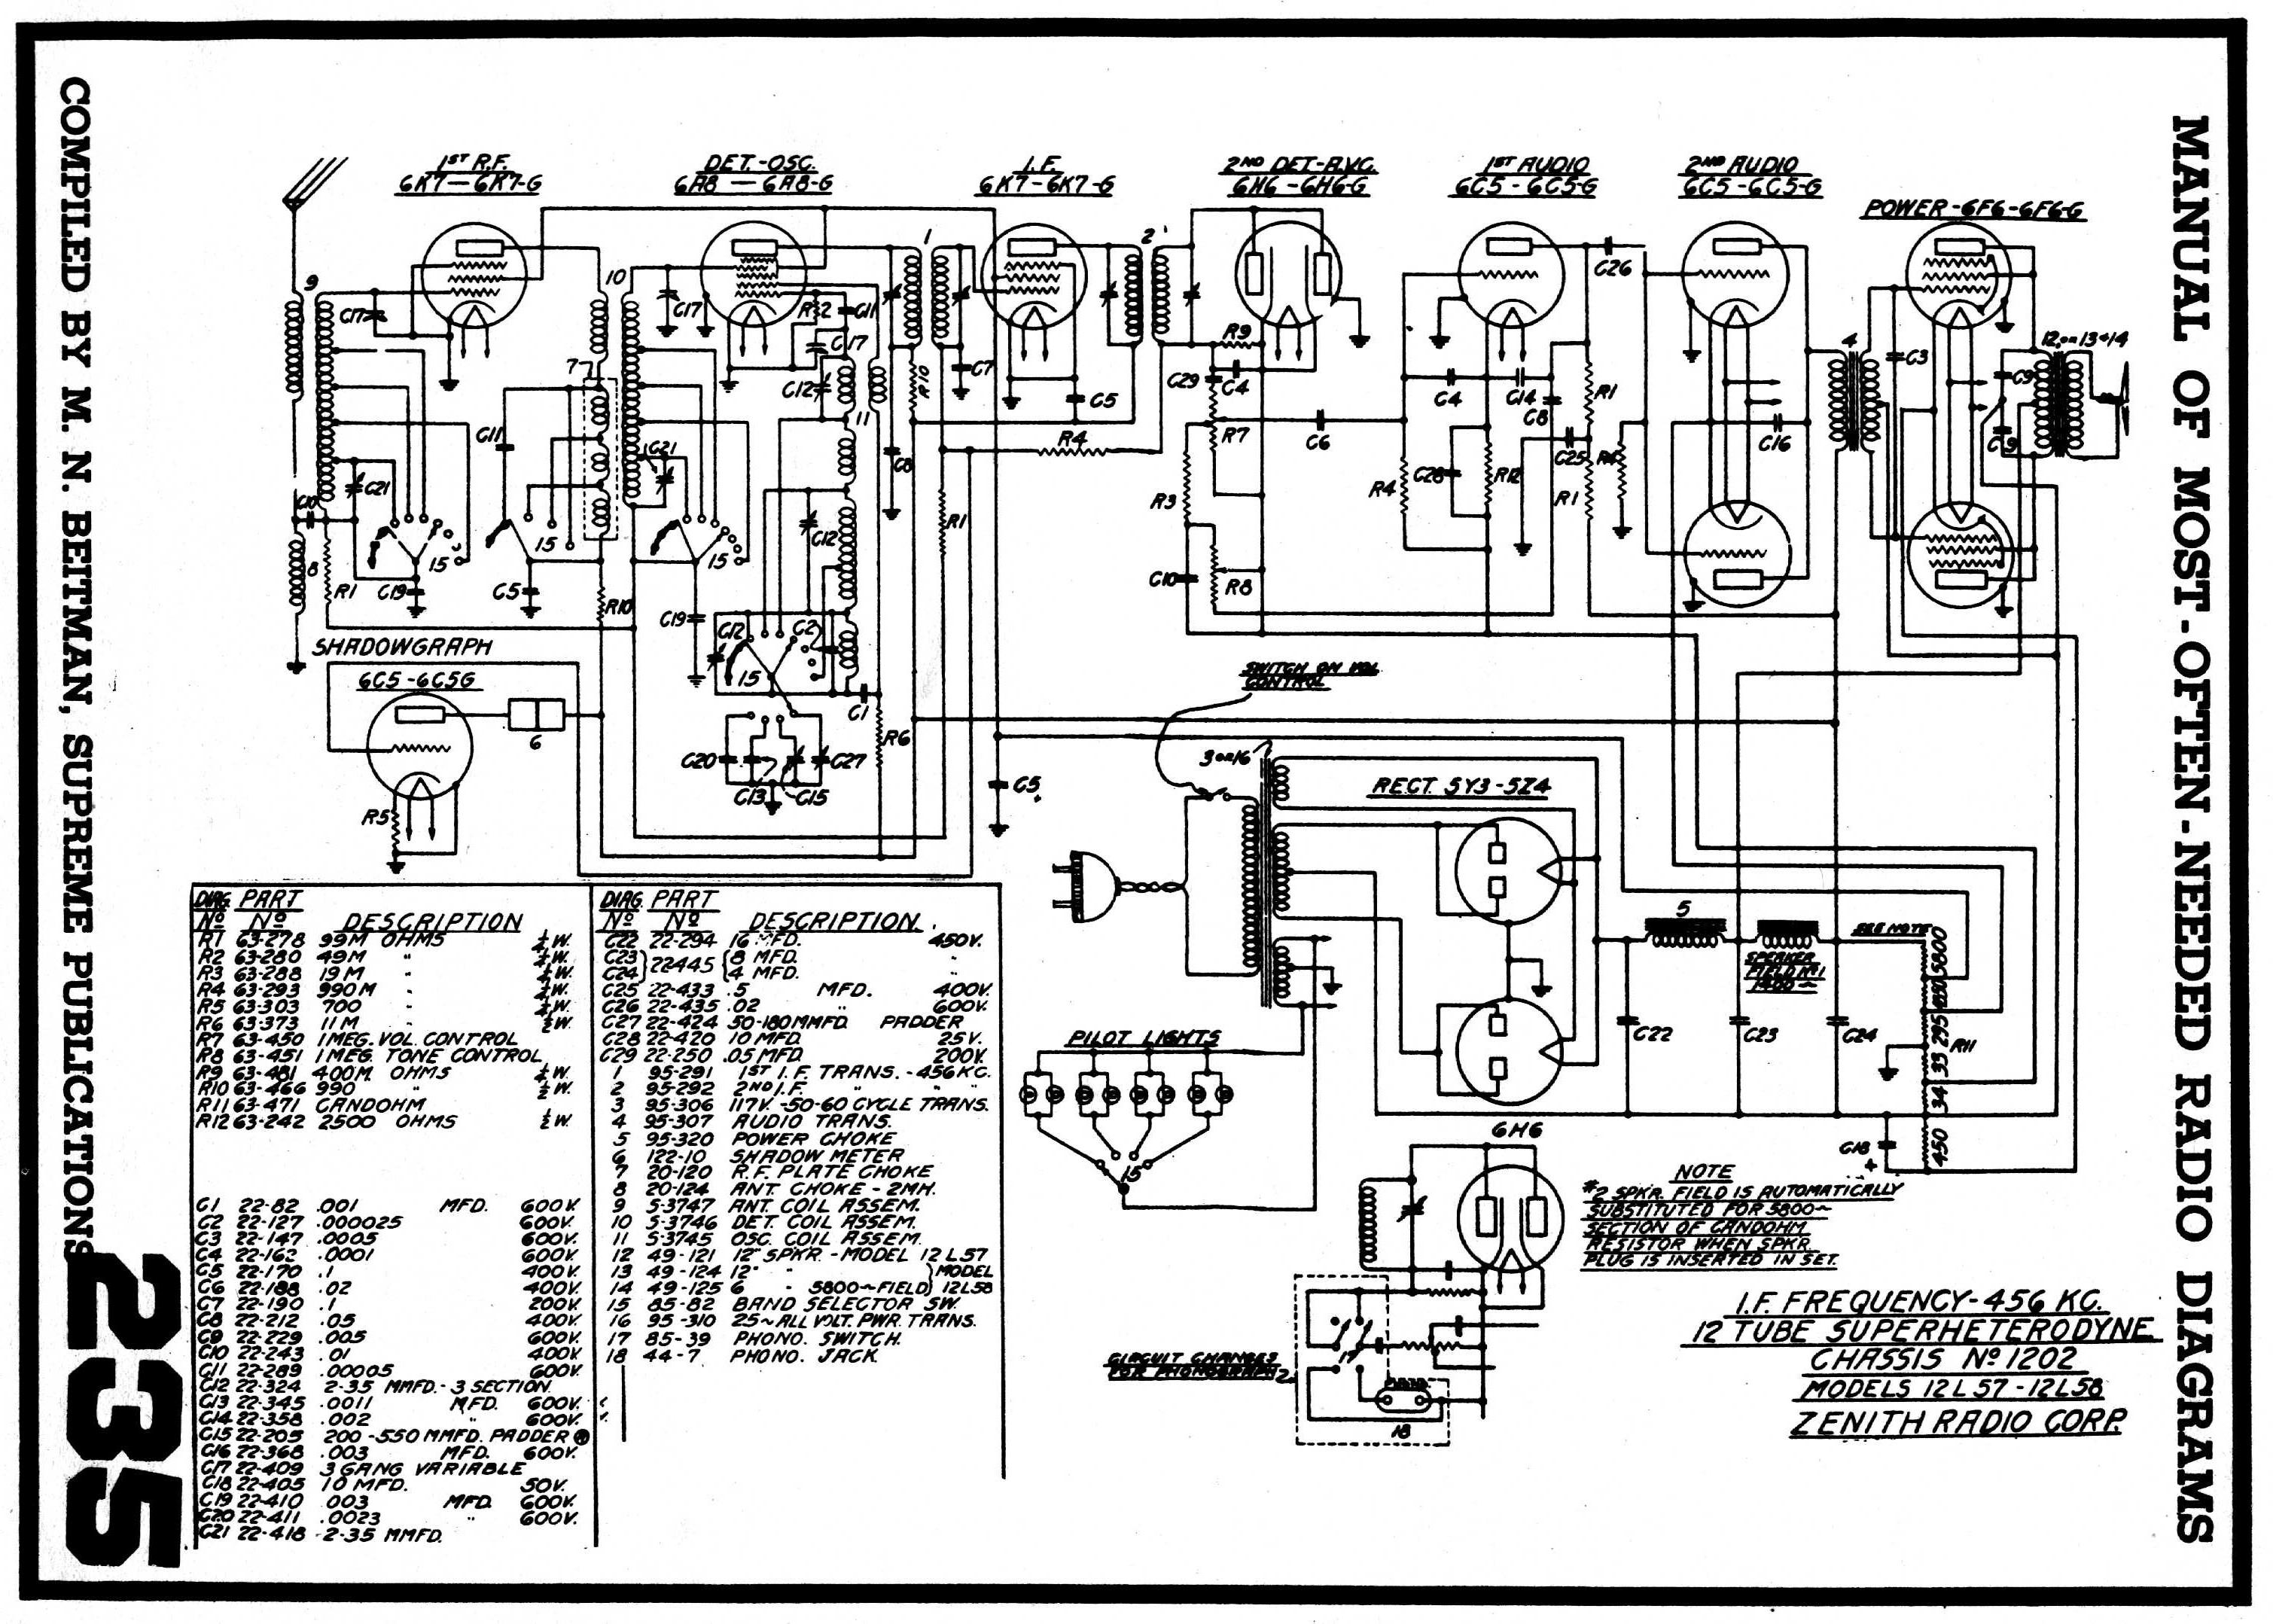 Diagrams And Service Data For Zenith 12 A 57